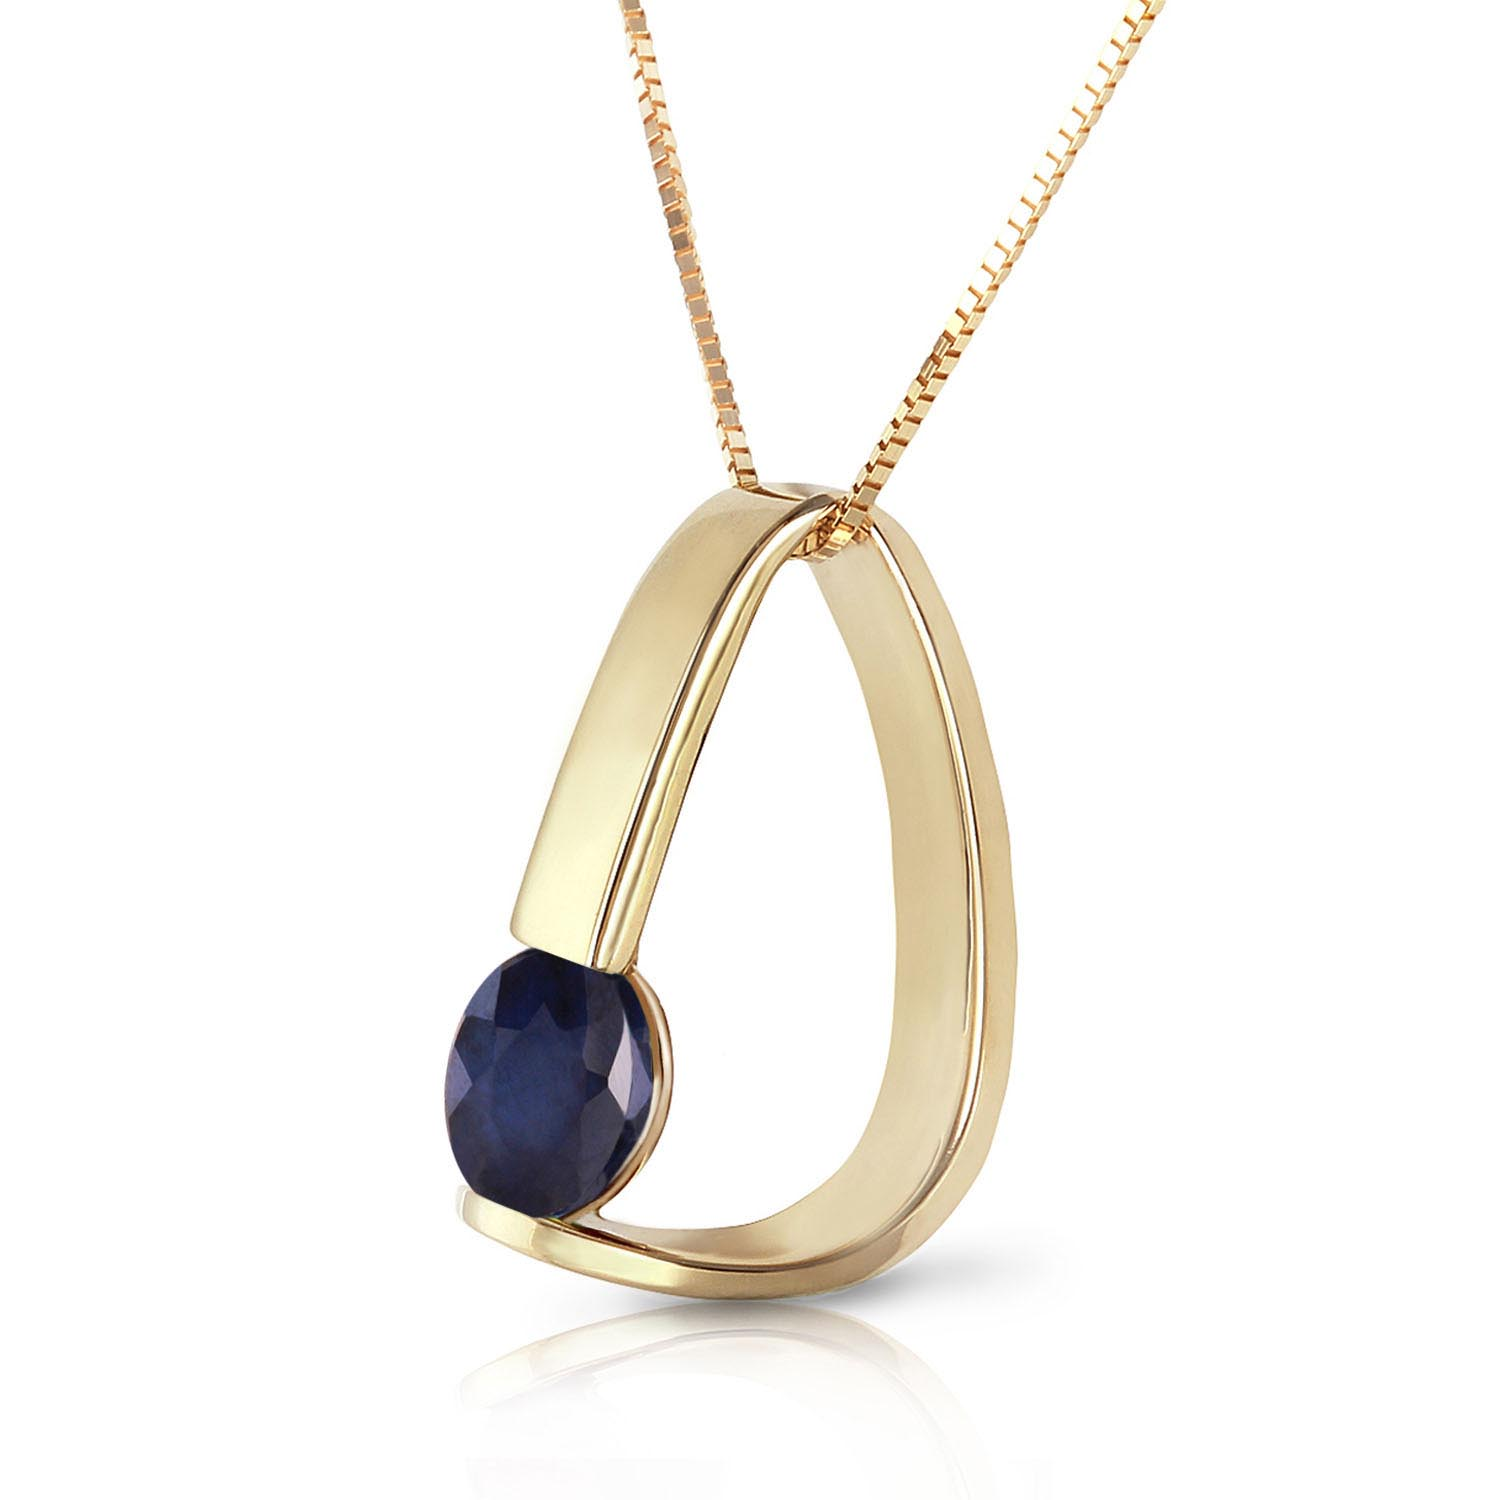 Sapphire Arc Pendant Necklace 1.5 ct in 9ct Gold